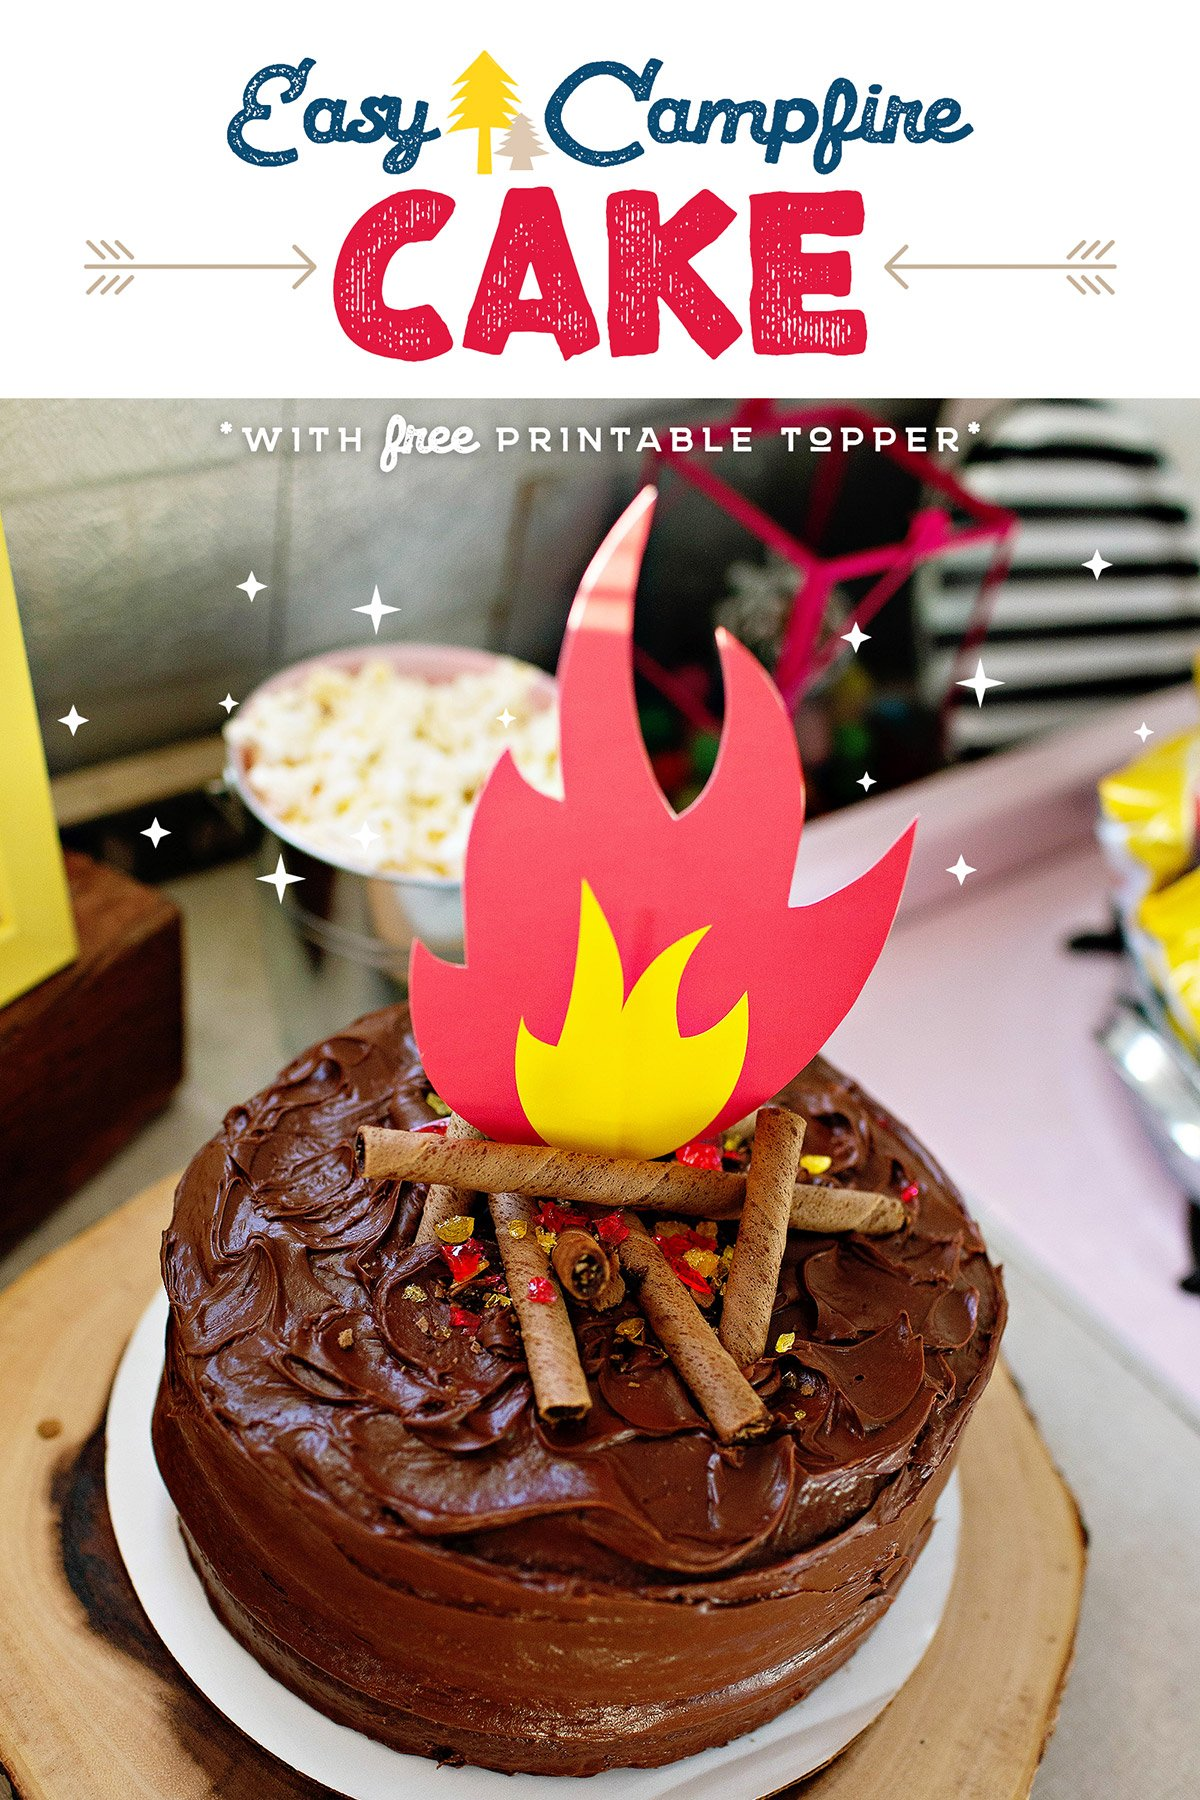 Groovy Easy Campfire Cake Printable Fire Topper Hostess With The Funny Birthday Cards Online Unhofree Goldxyz